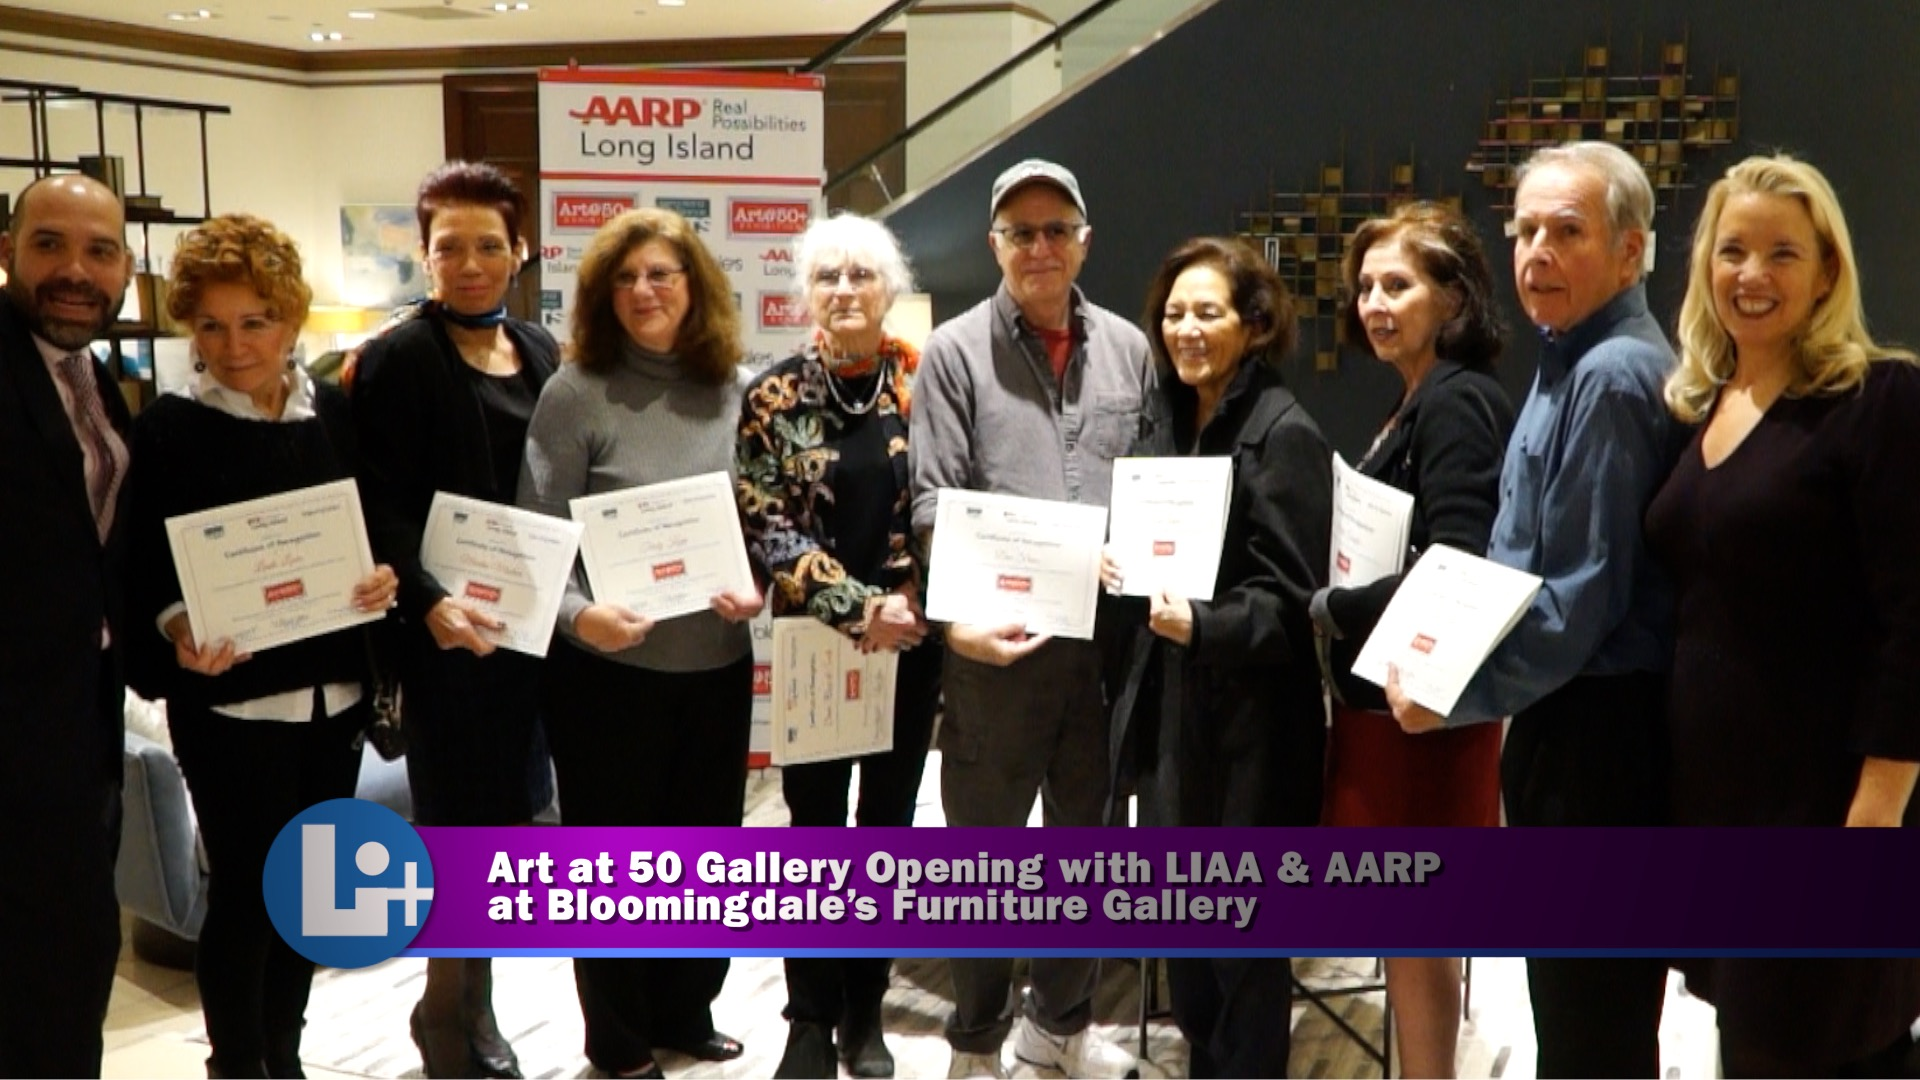 Art At 50 Exhibition with LIAA and AARP at Bloomingdales Furniture Gallery